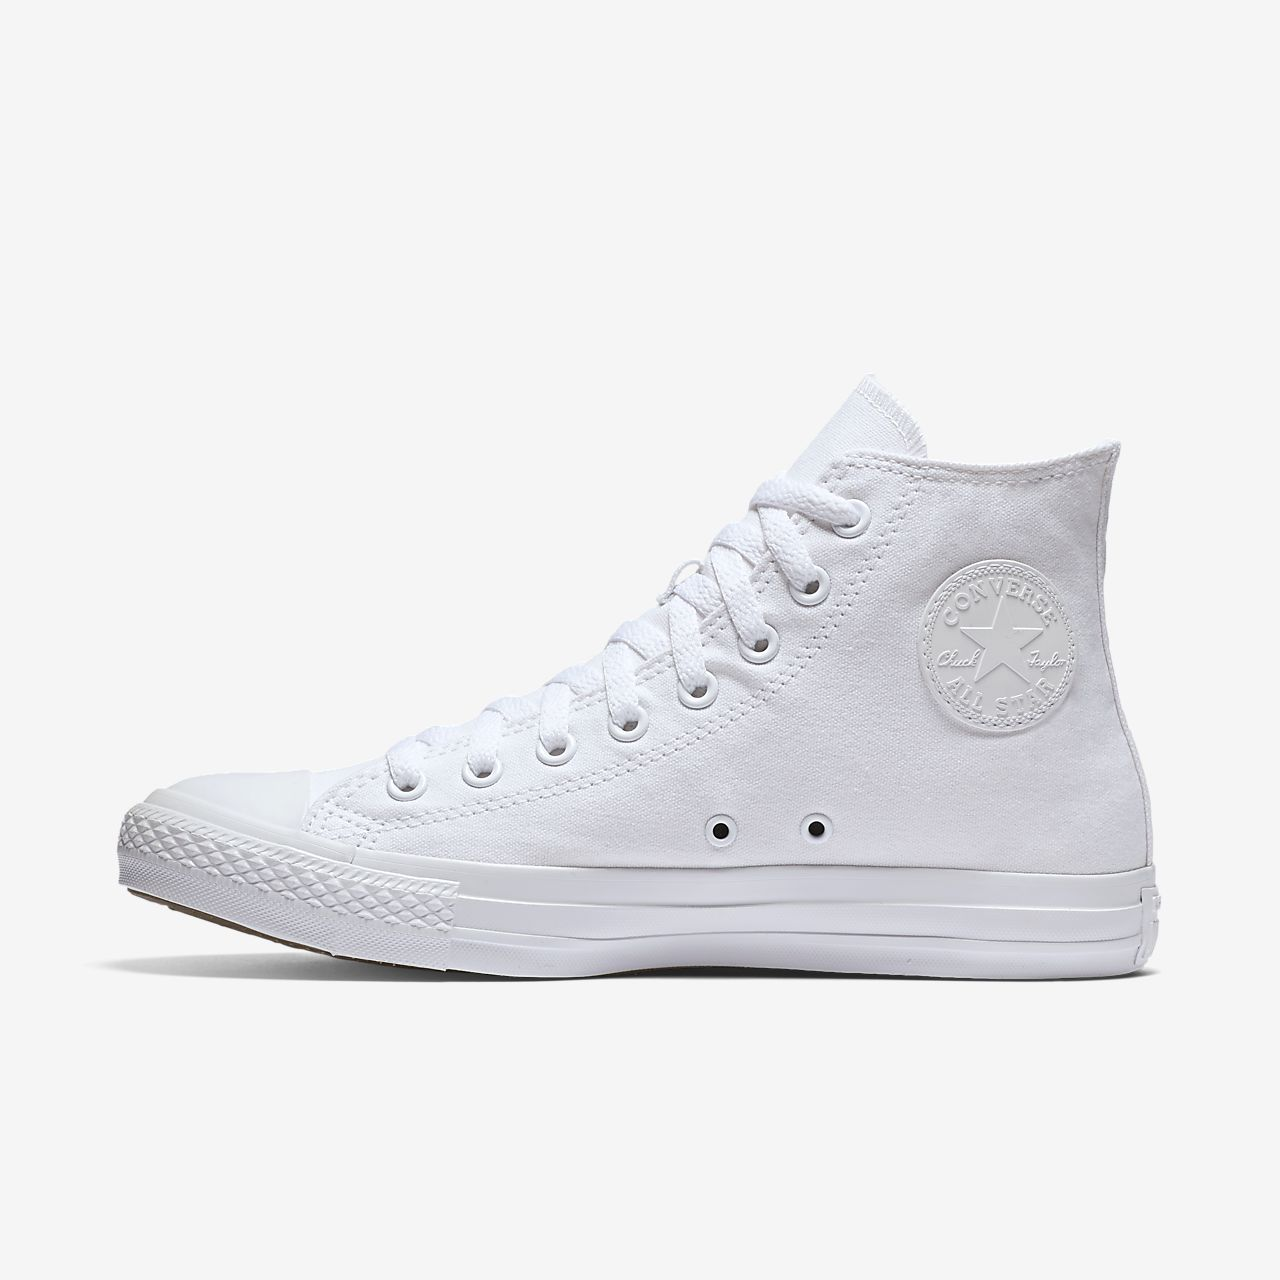 Converse Chuck Taylor Monochrome High Top Unisex Shoe ...